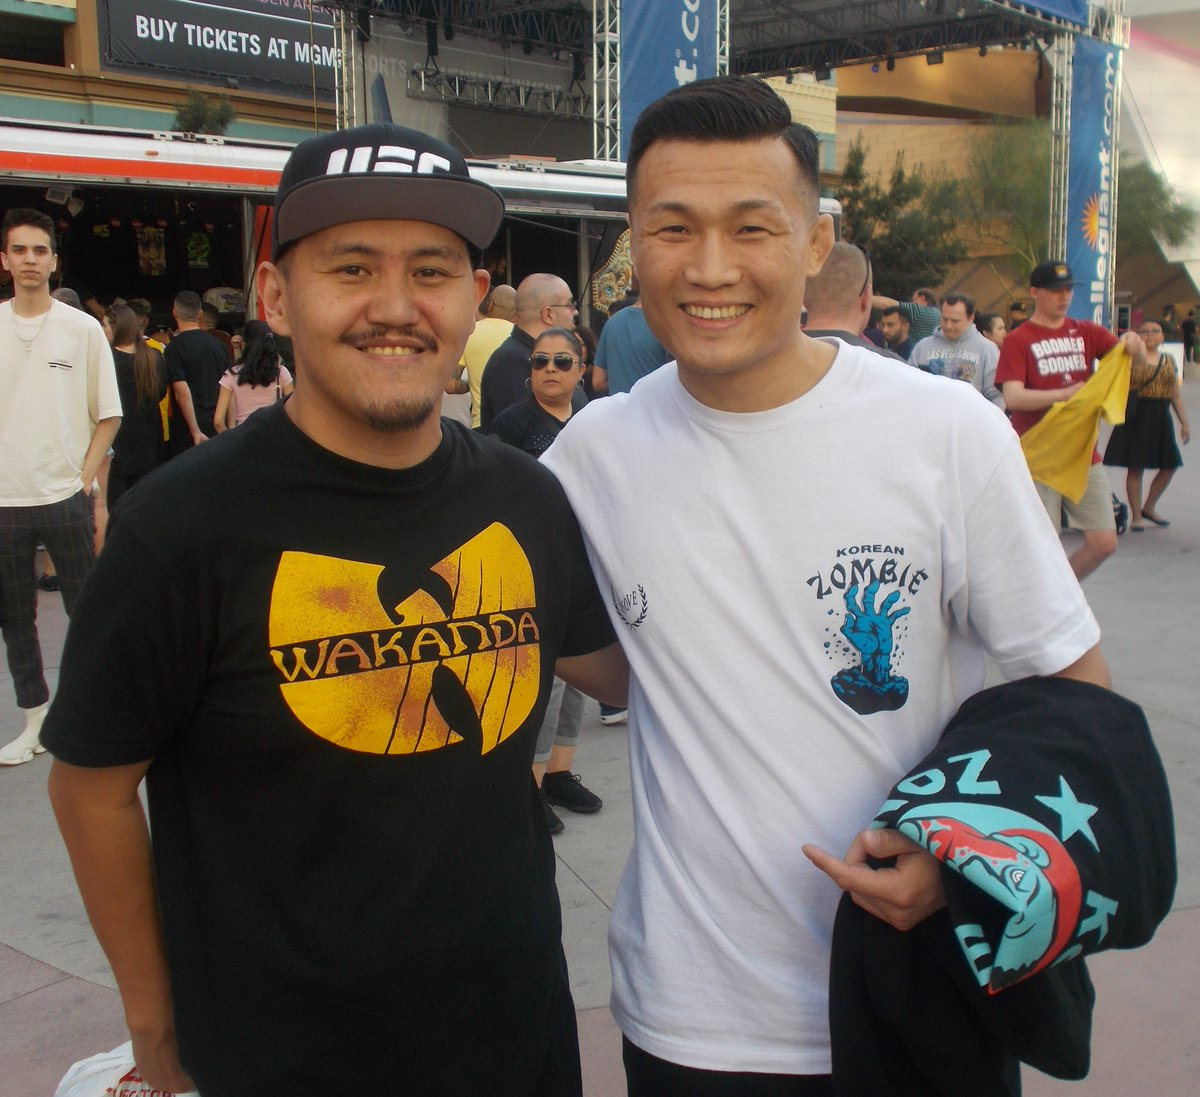 So a month before the #10thAnniversary of #GARCIAvsKOREANZOMBIE I met Chang Sung Jung. Nice timing, right? This was at the #UFC248 weigh ins. #WEC48 #Revisited #WECNeverDie @UFC #OnlyVegas https://t.co/MBrjdAVEqx